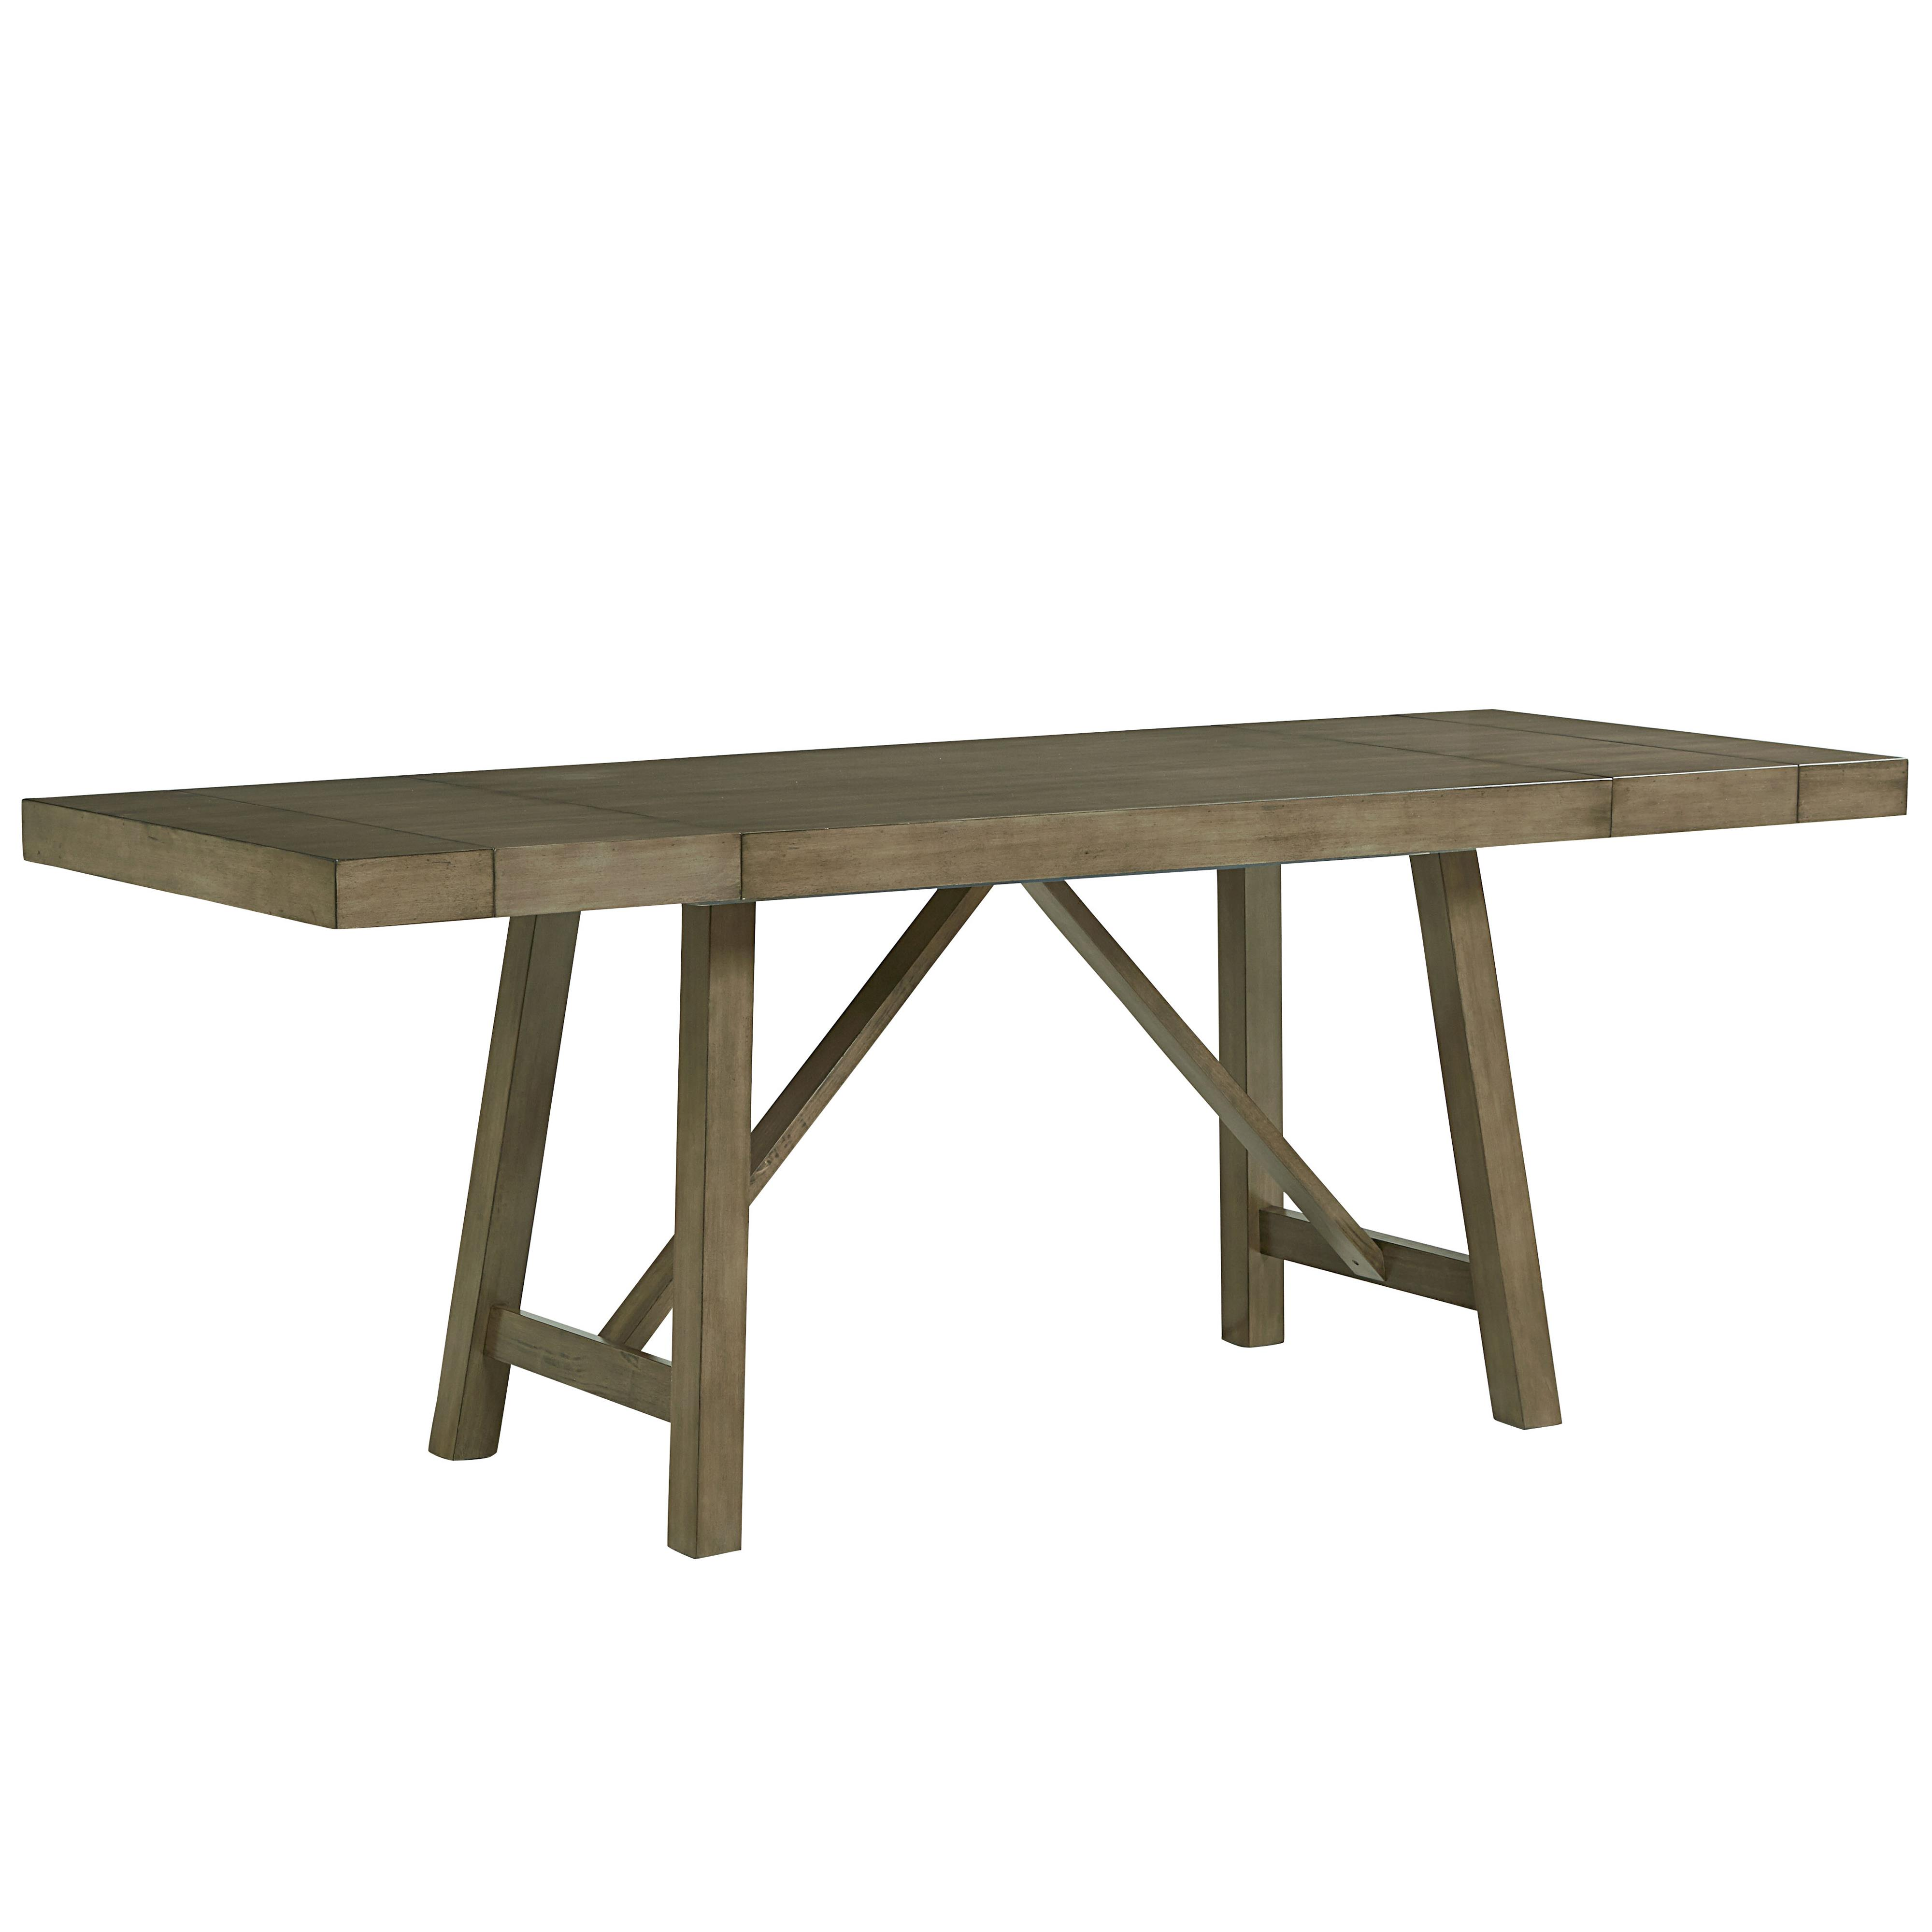 Standard Height Of Dining Room Table Counter Height Dining Room Table With Trestle Base By Standard